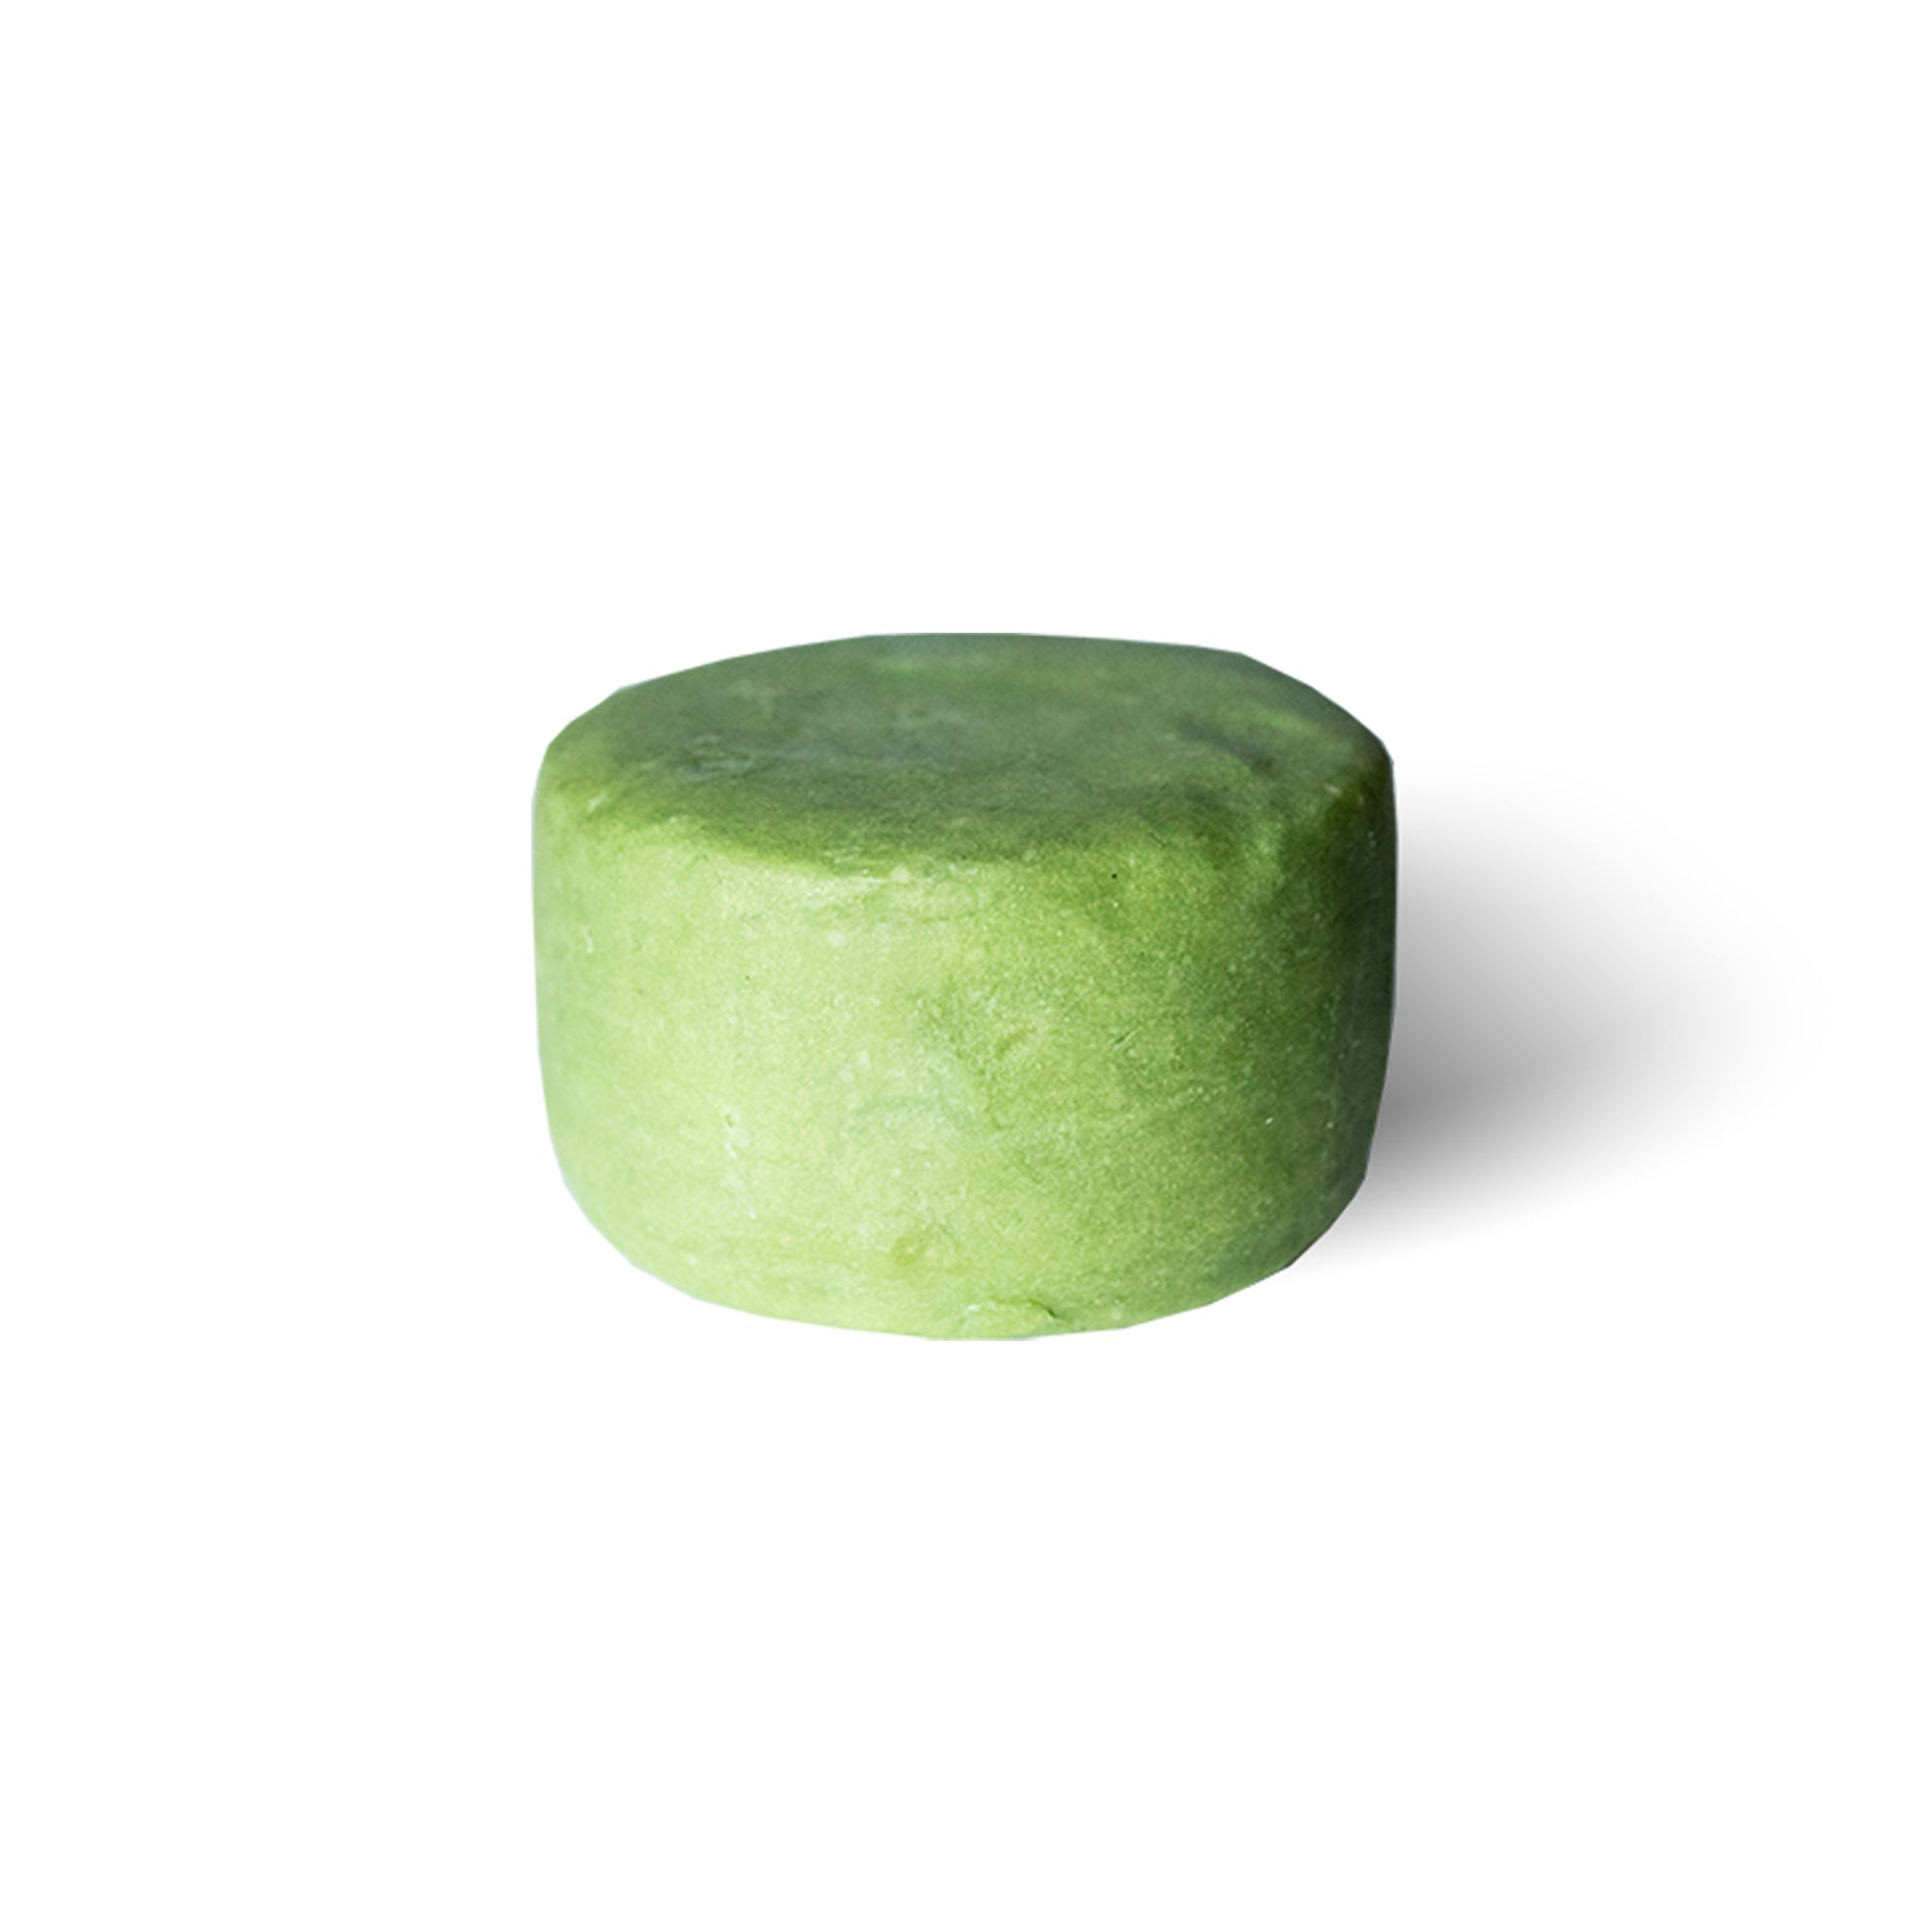 Clove and Lemon Myrtle Shampoo Bar